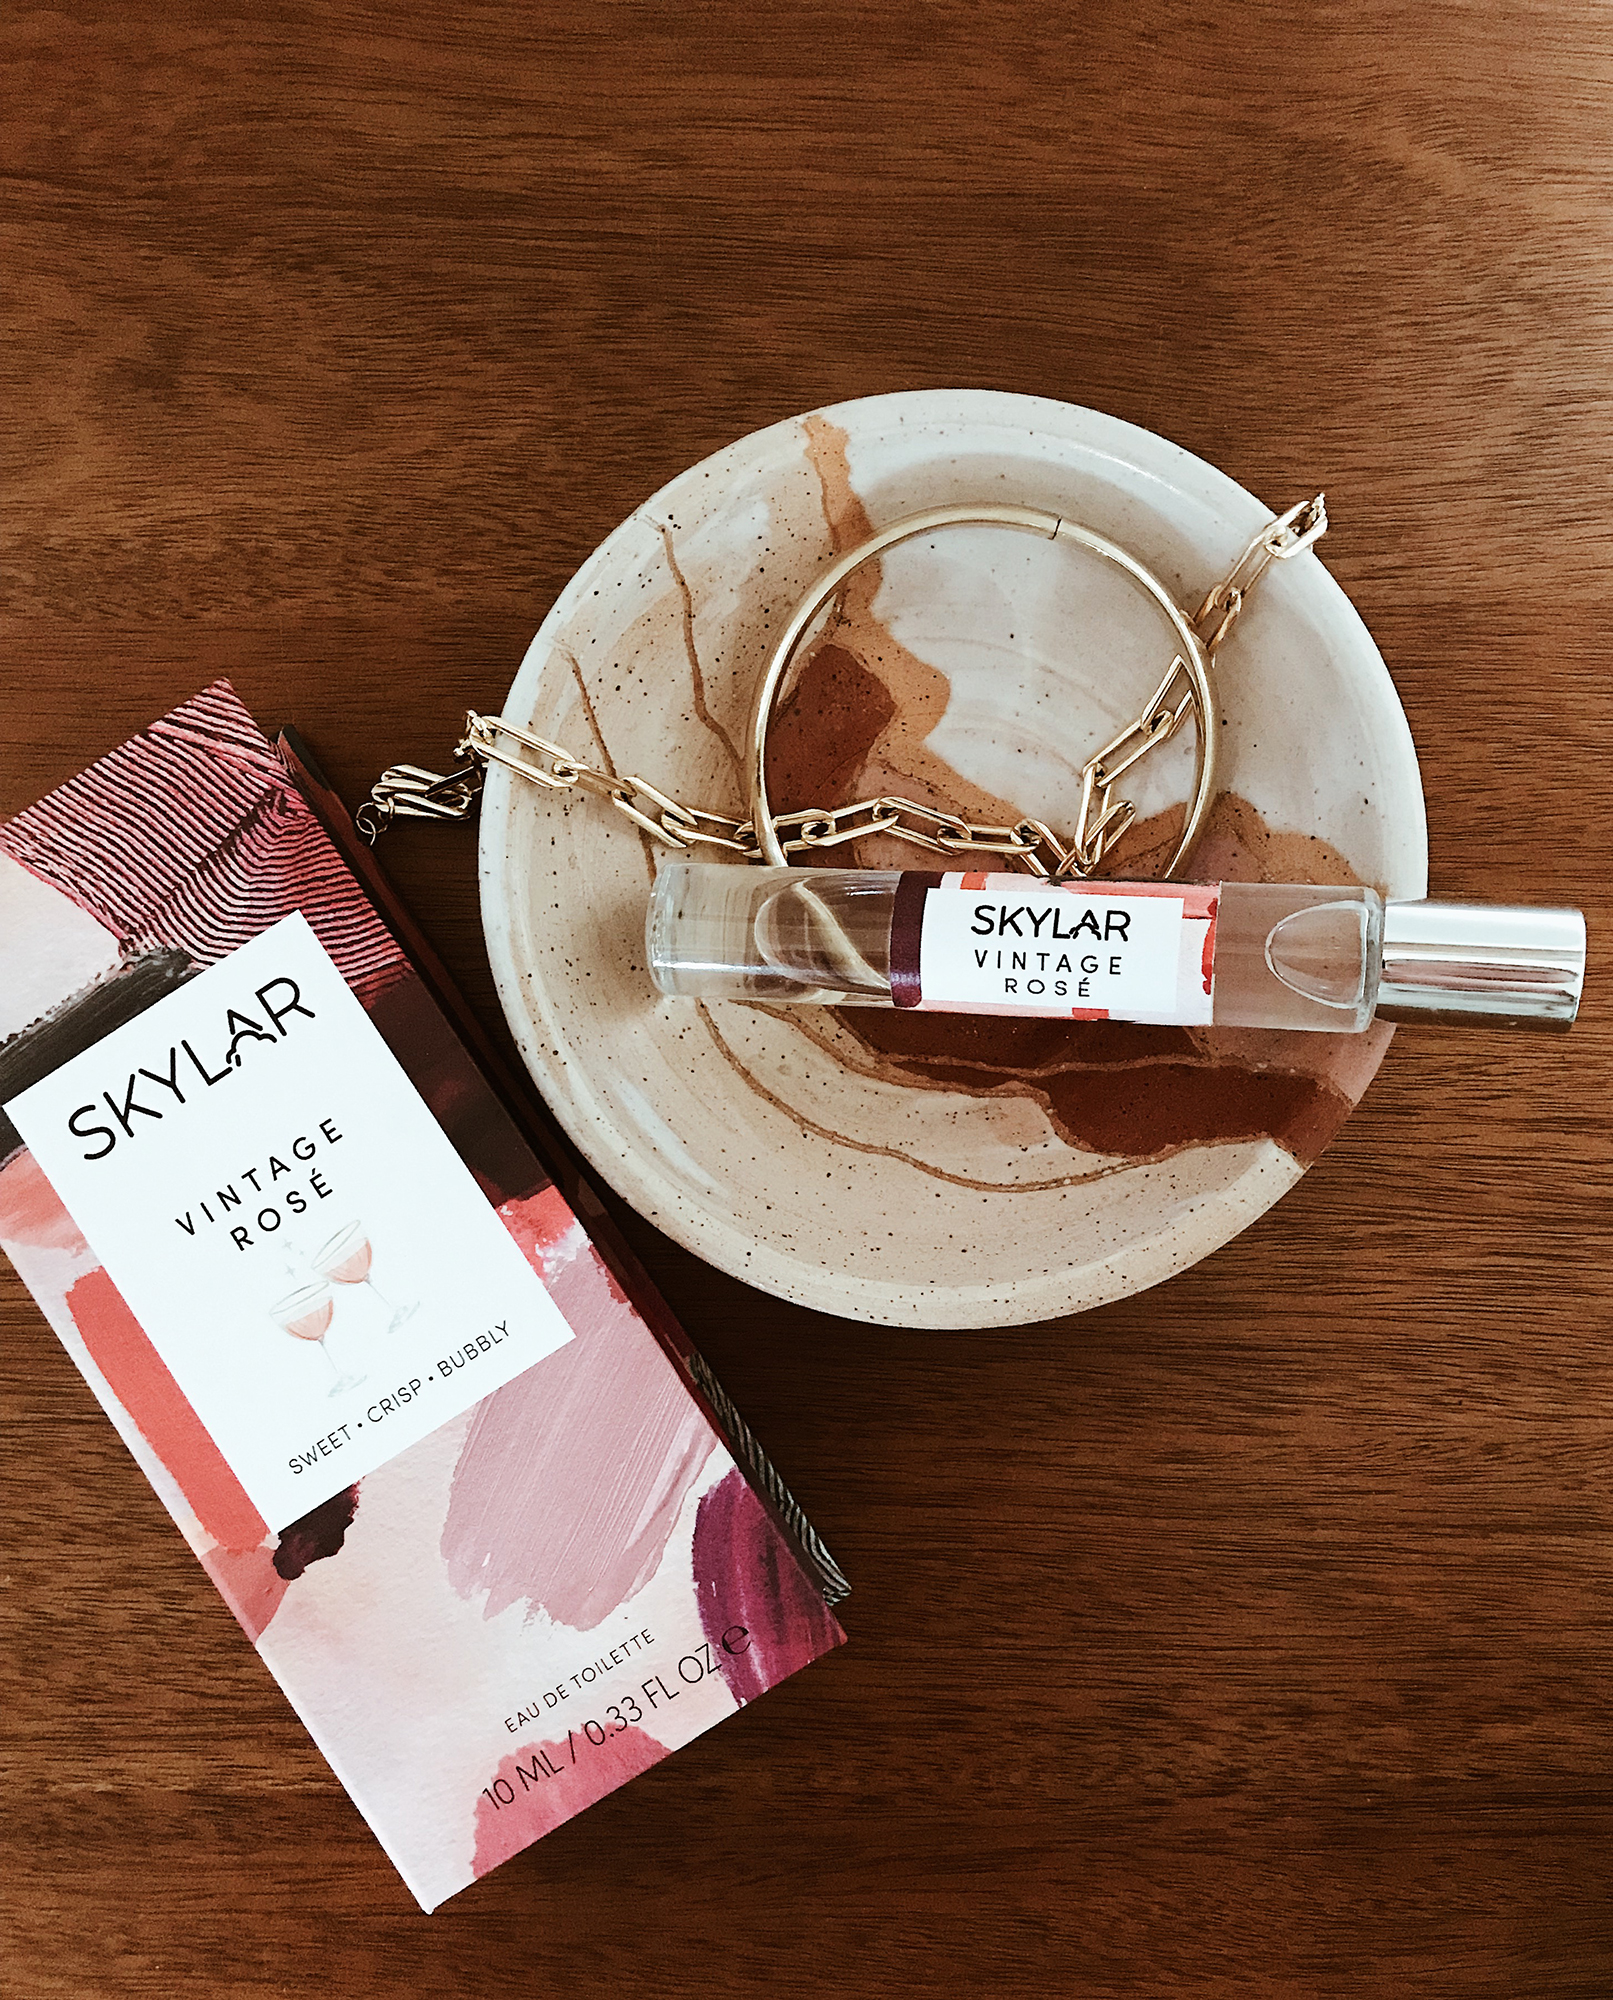 Skylar-Scent-Club - Show the mom in your life how much you love her all year long with the gift that keeps on giving — a perfume subscription. $20/month, skylar.com